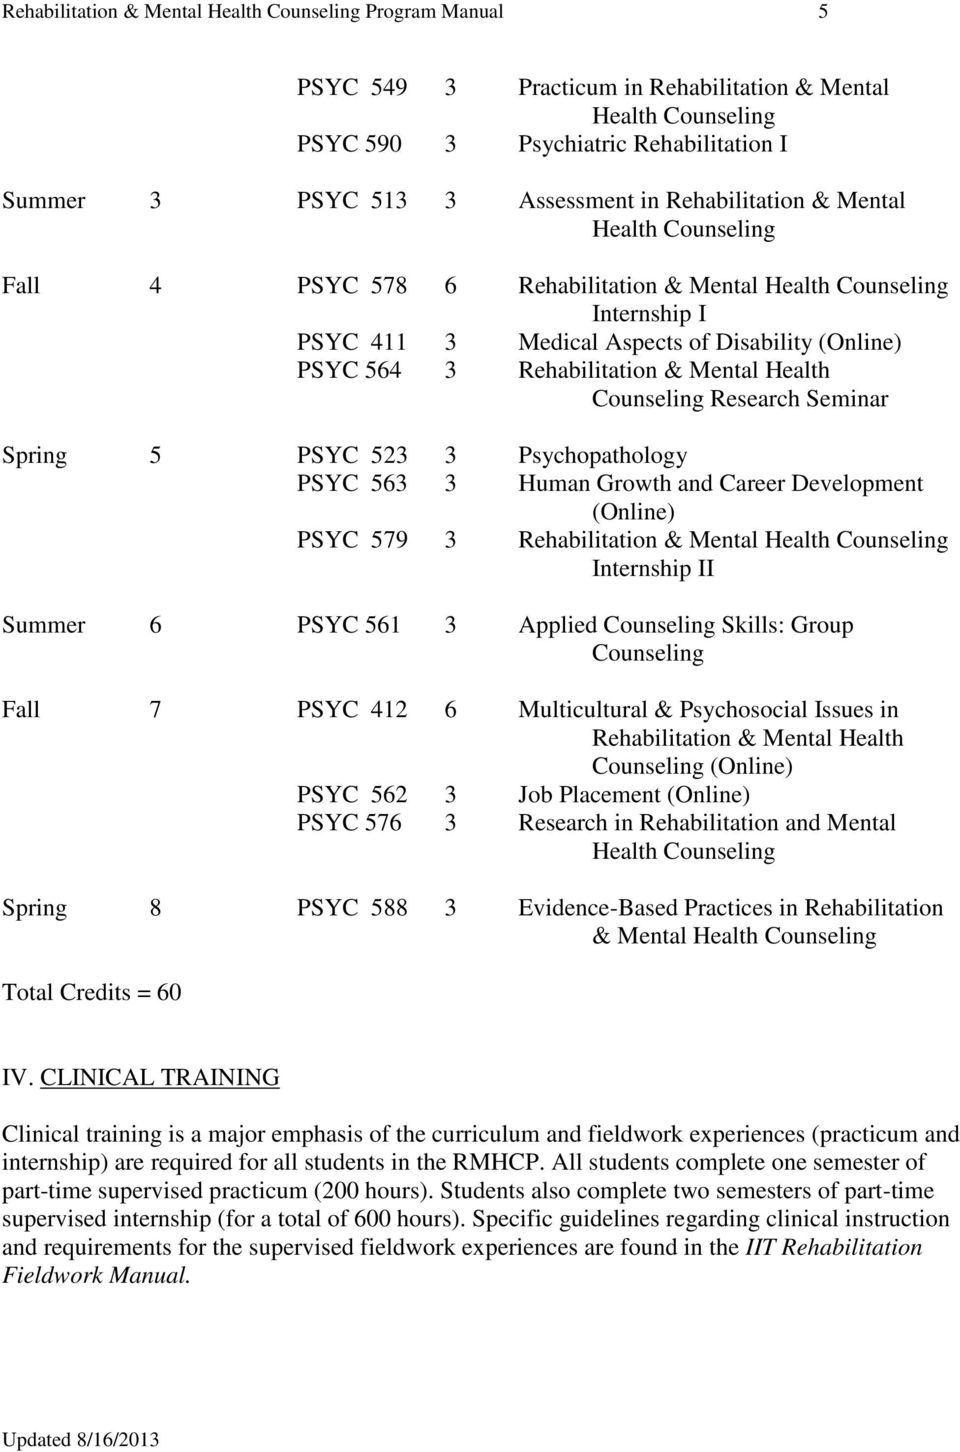 Health Counseling Research Seminar Spring 5 PSYC 523 3 Psychopathology PSYC 563 3 Human Growth and Career Development (Online) PSYC 579 3 Rehabilitation & Mental Health Counseling Internship II